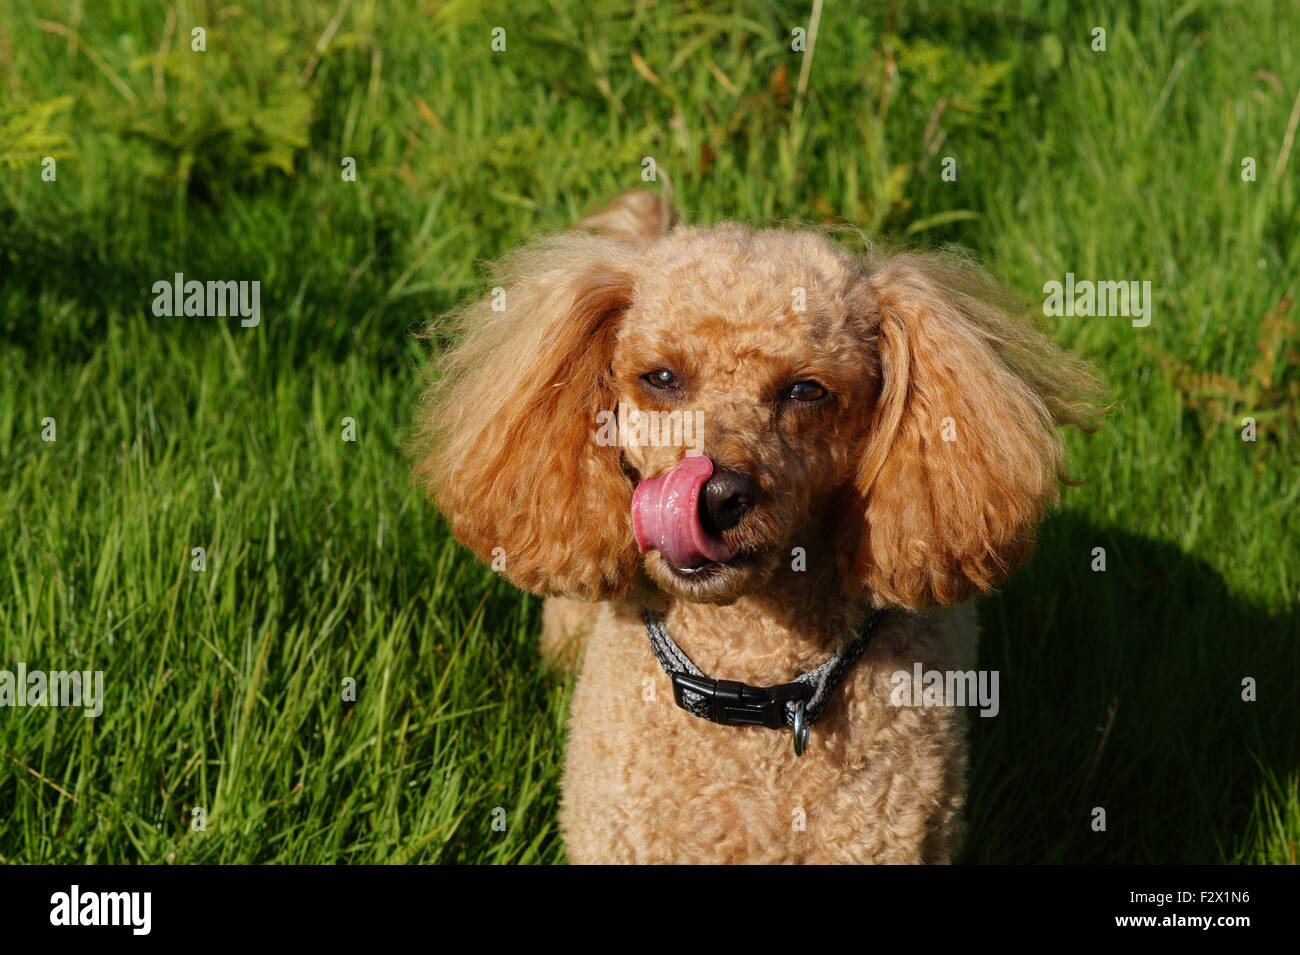 Little Red Toy Poodle with fluffy ears Licking Nose Facing Camera Stock Photo